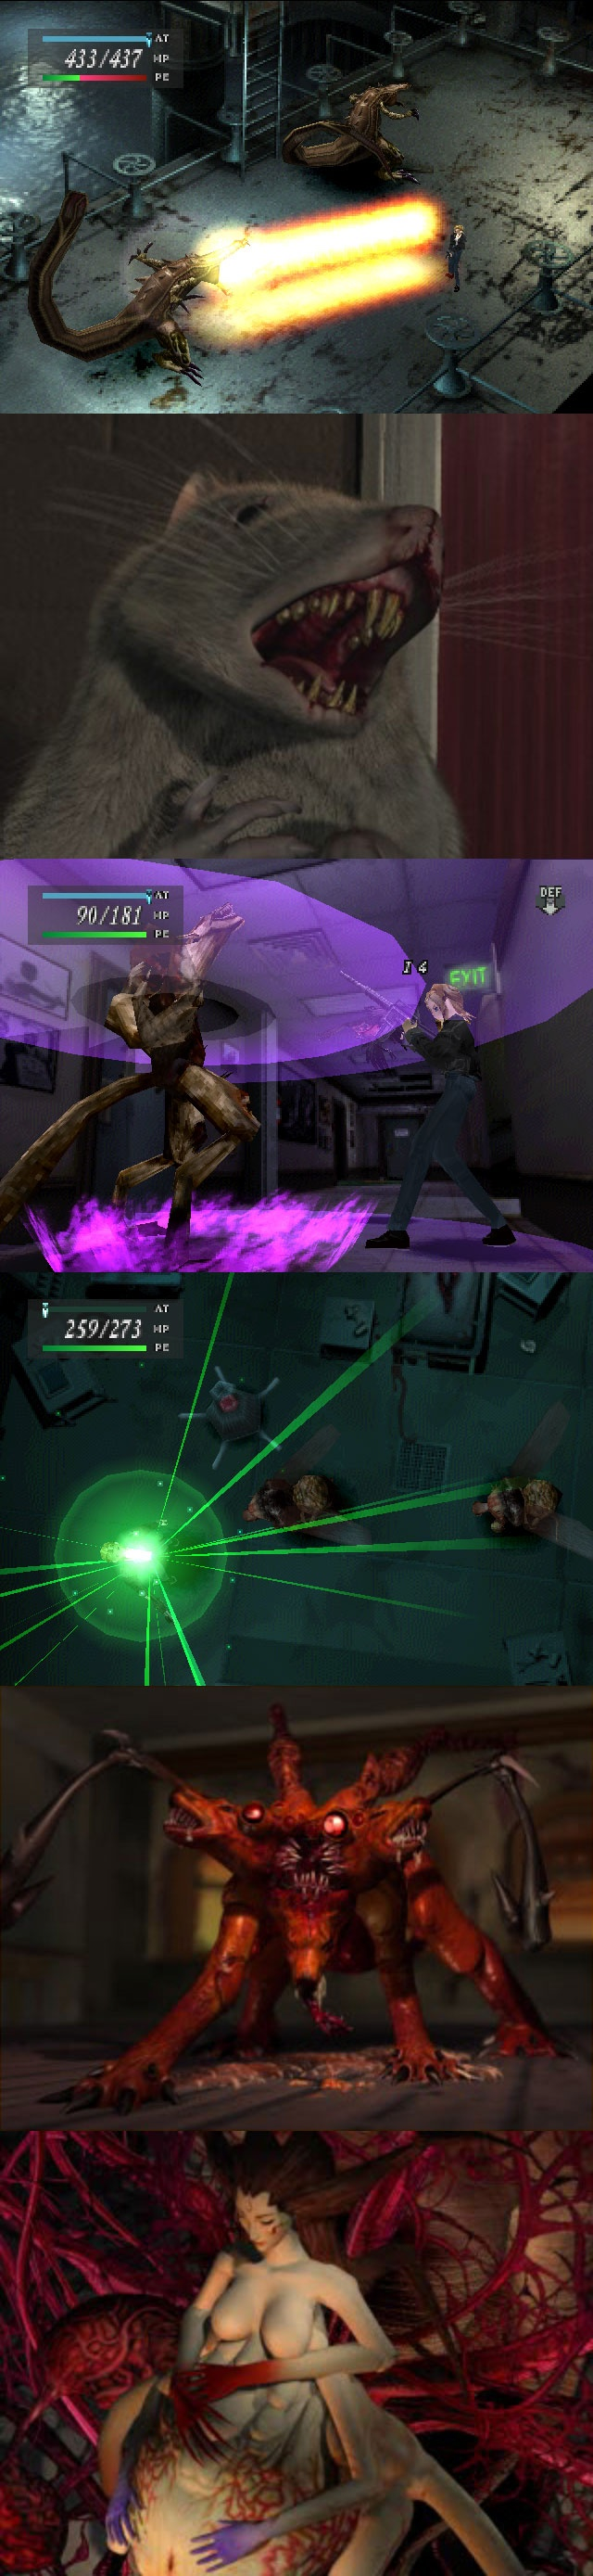 Parasite Eve is such an awesome game!